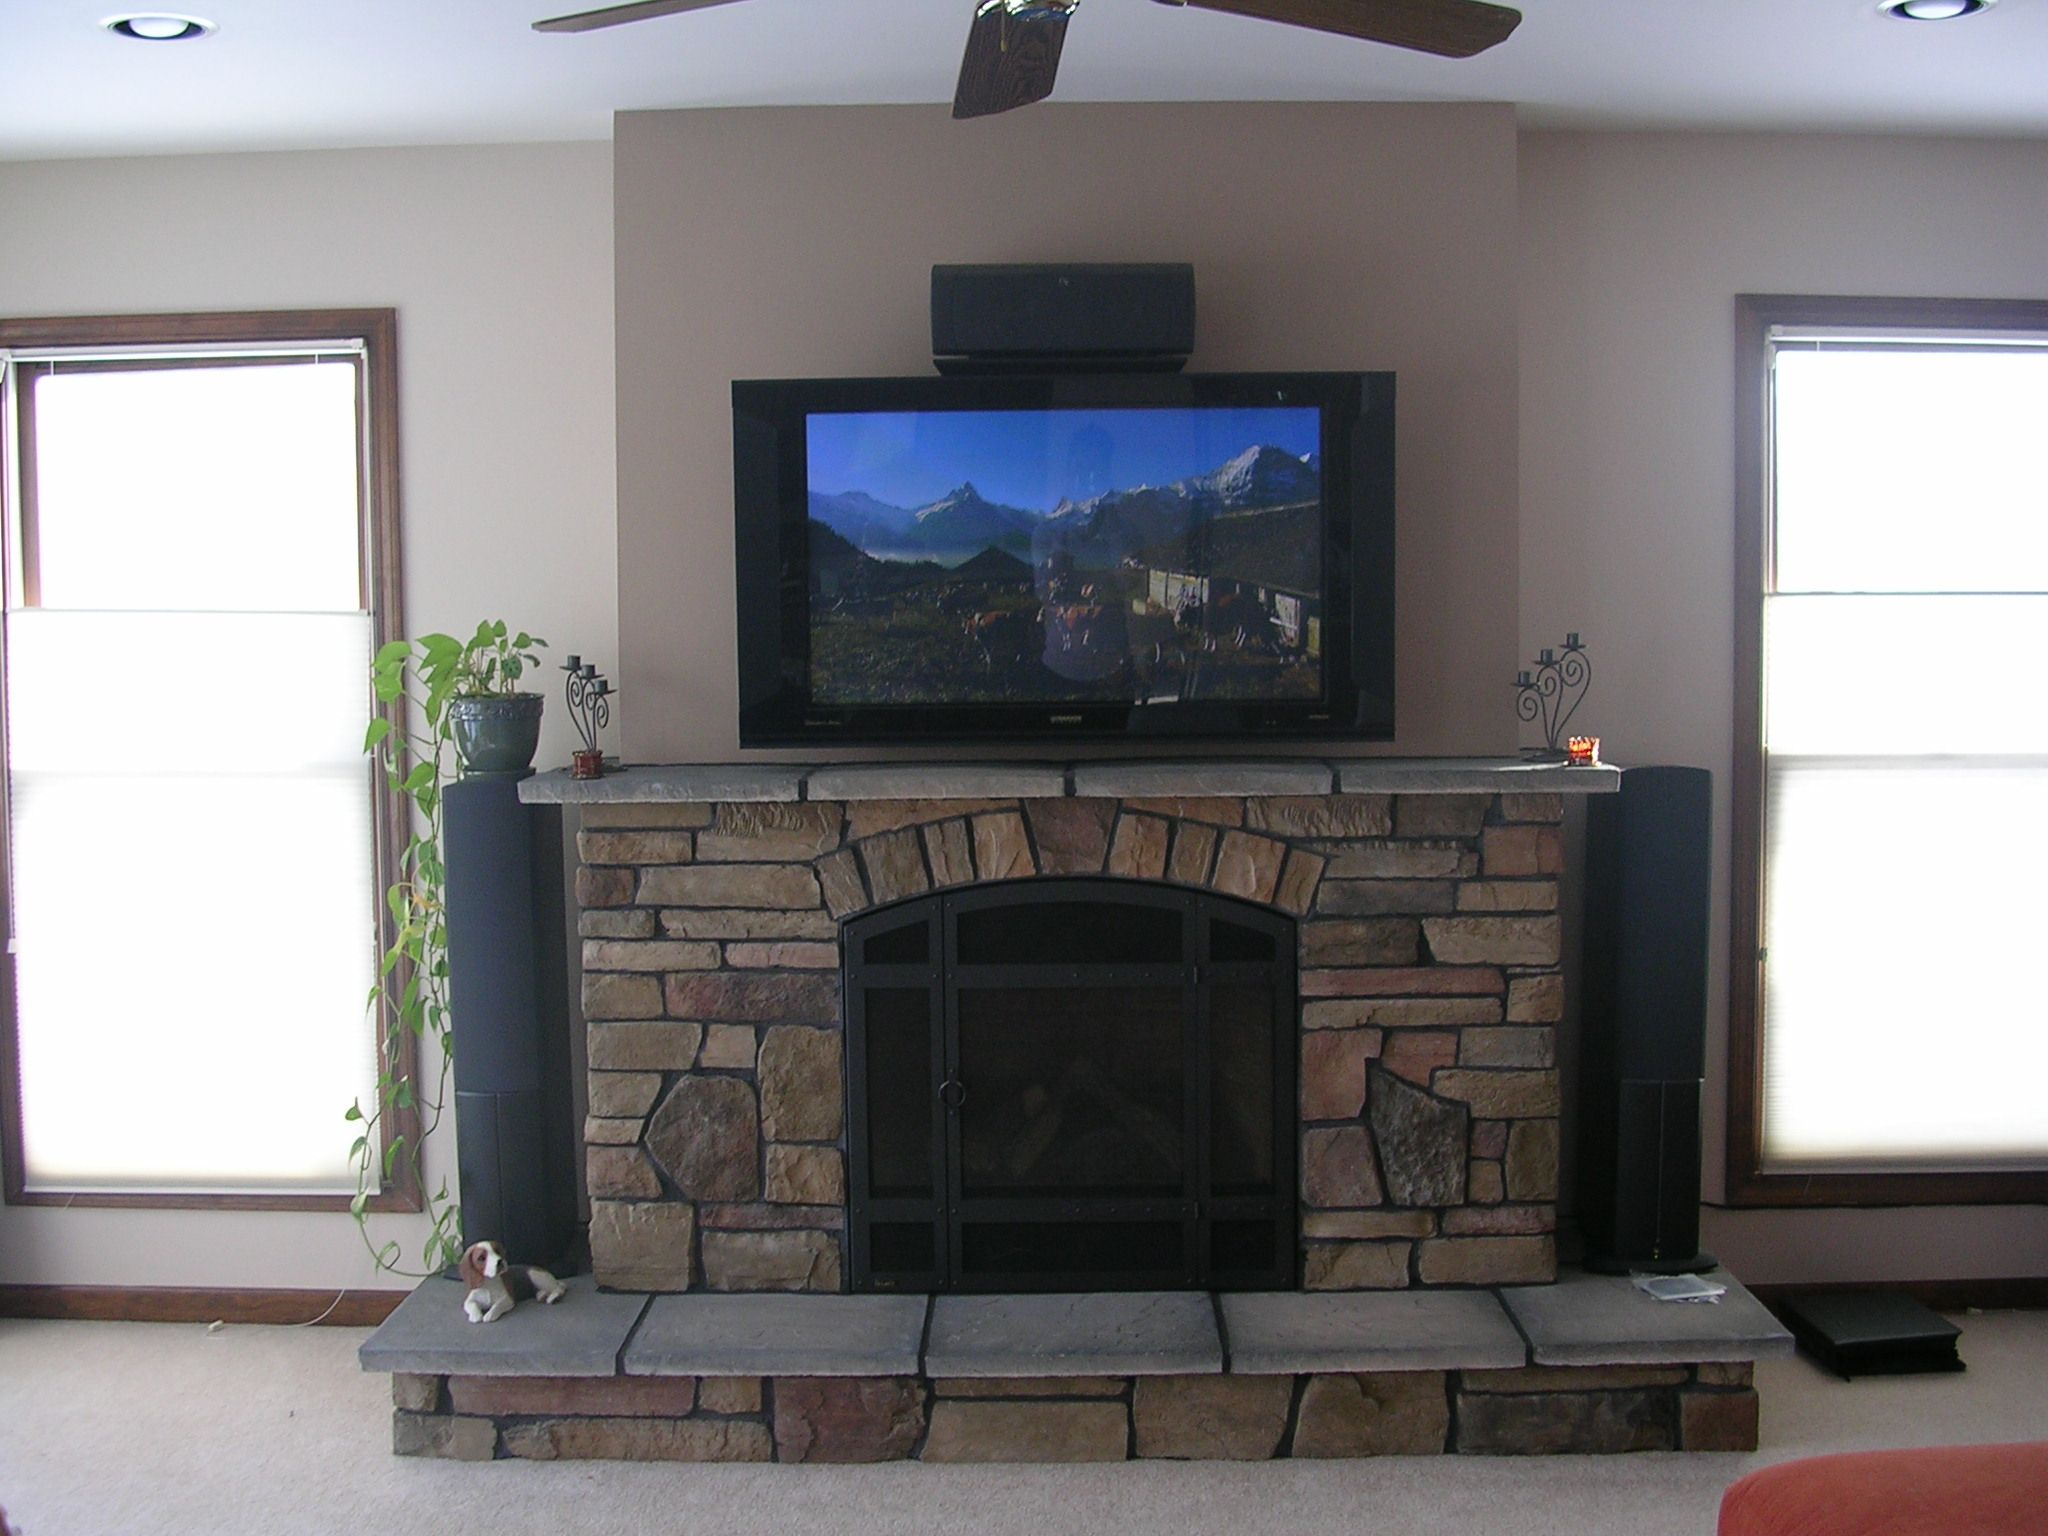 diy ventless gas log fireplace my husband and i built for our